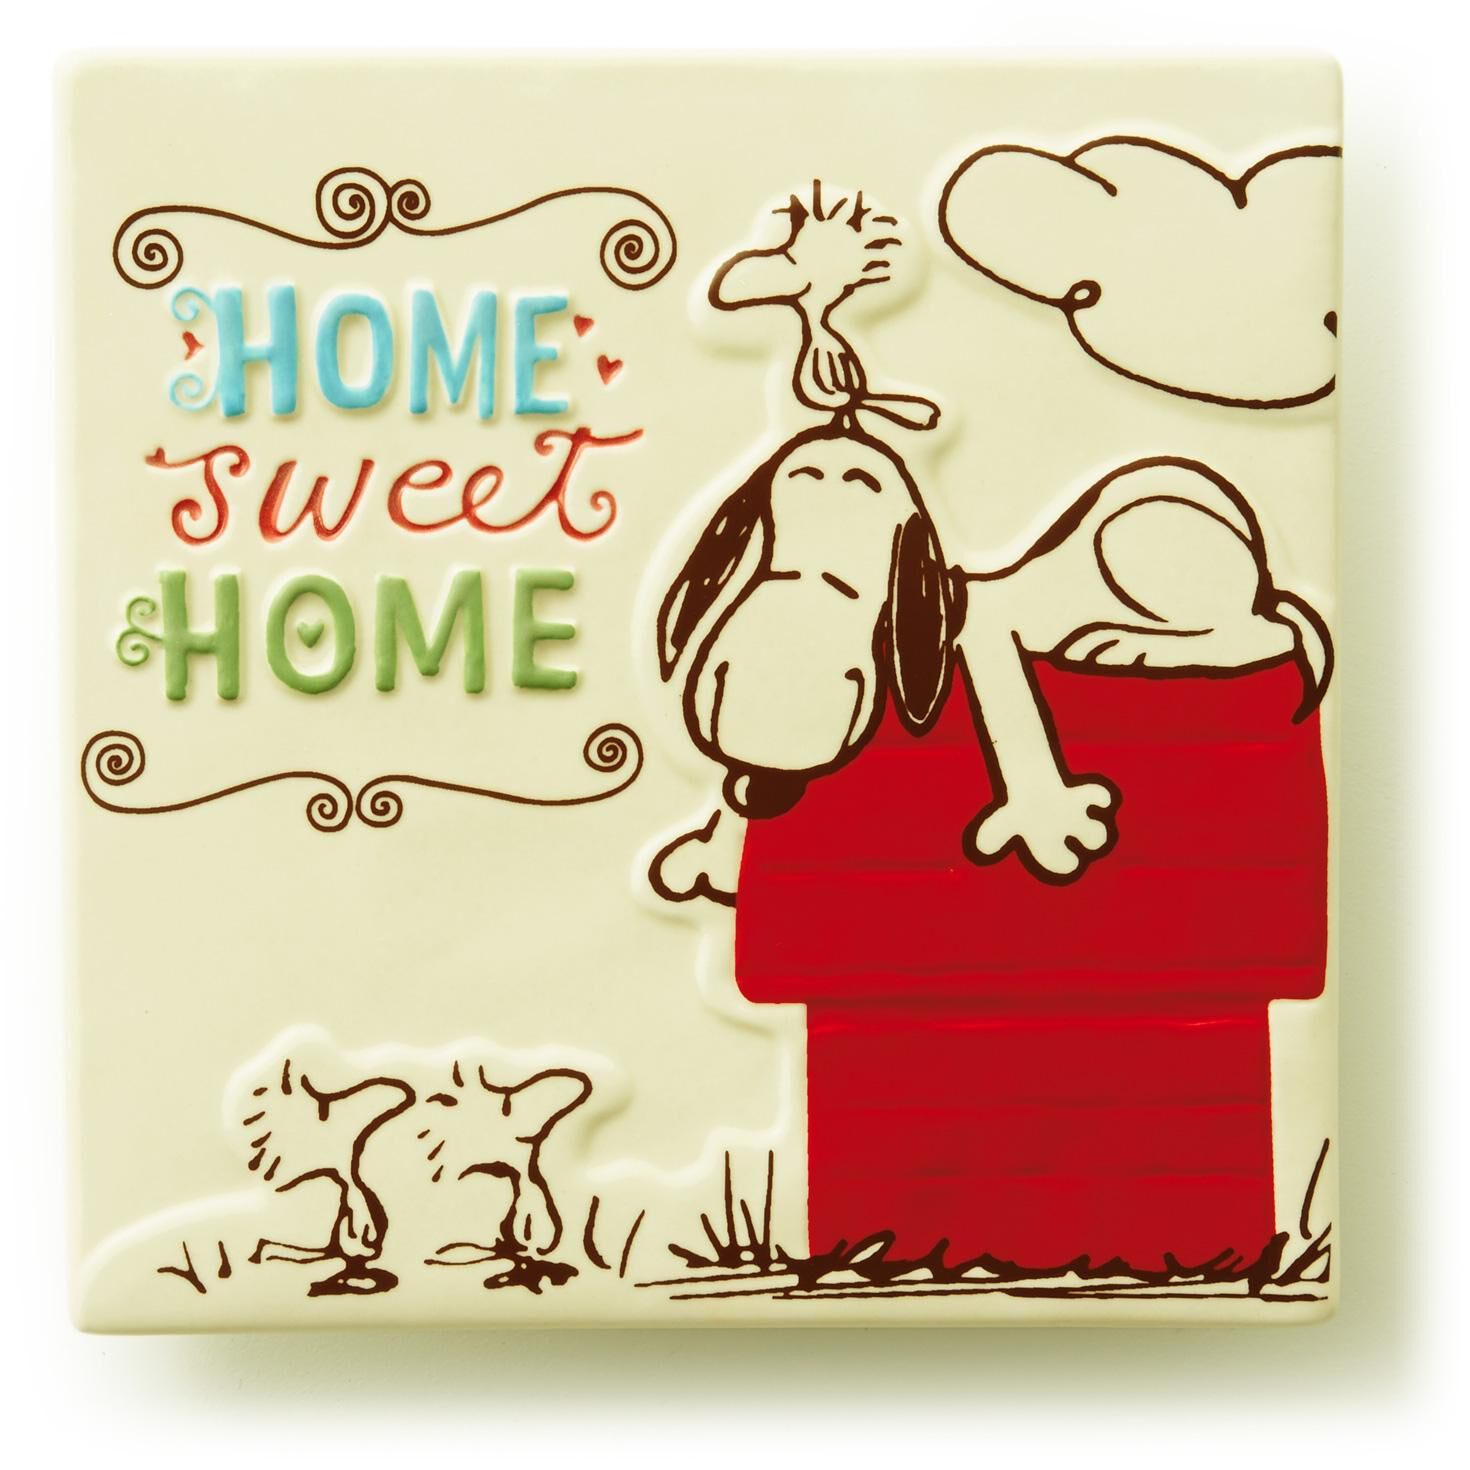 Home Sweet Home Ceramic Tile Plaques Signs Hallmark